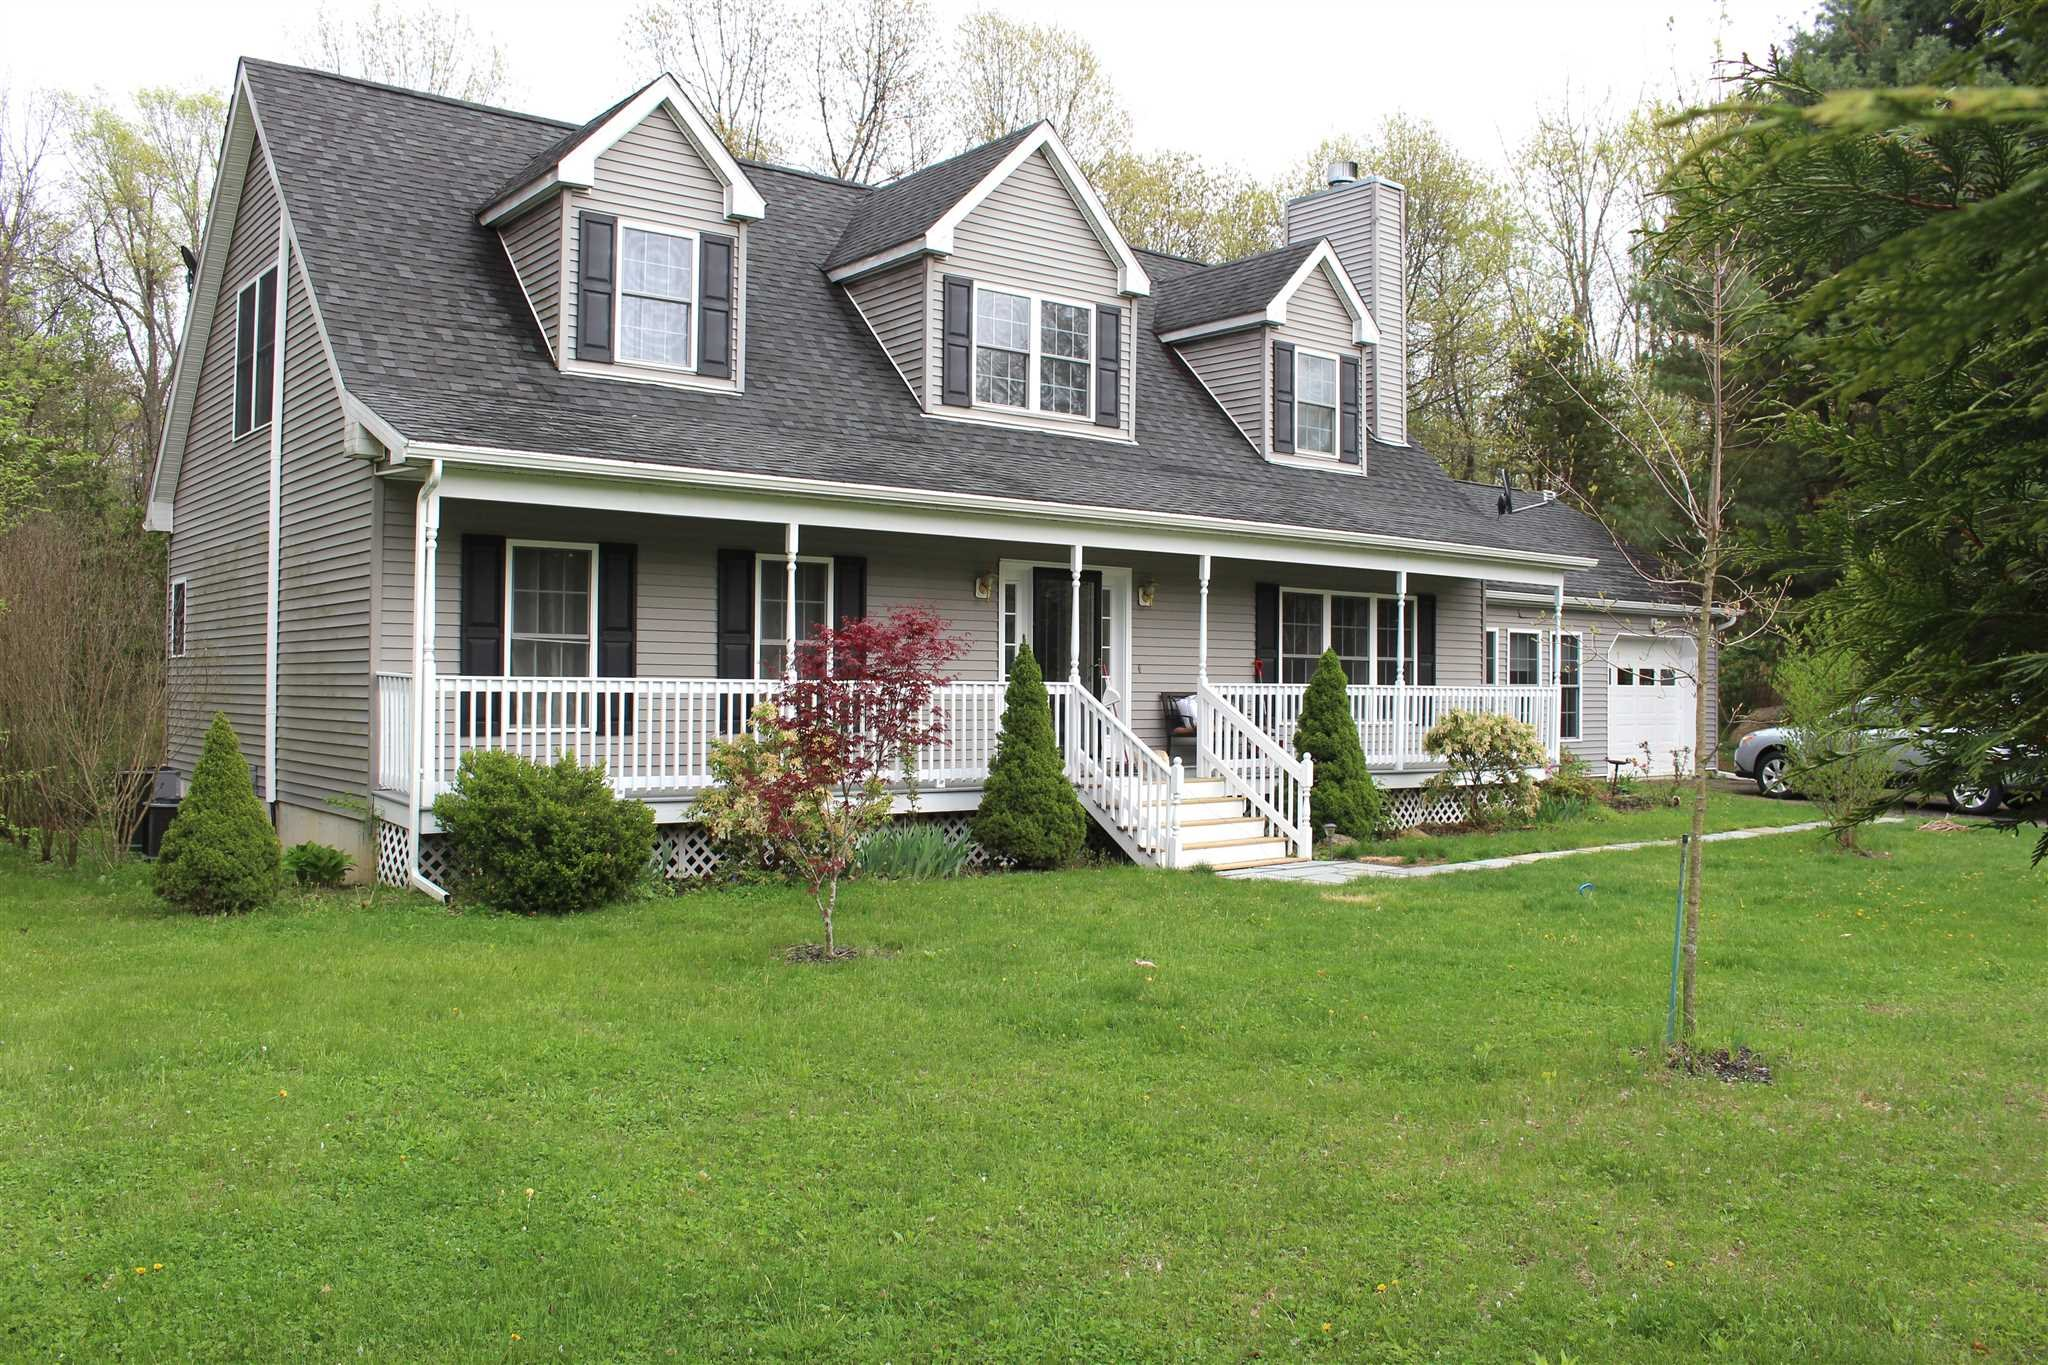 Single Family Home for Sale at 1500 ROUTE 9 1500 ROUTE 9 Clermont, New York 12583 United States